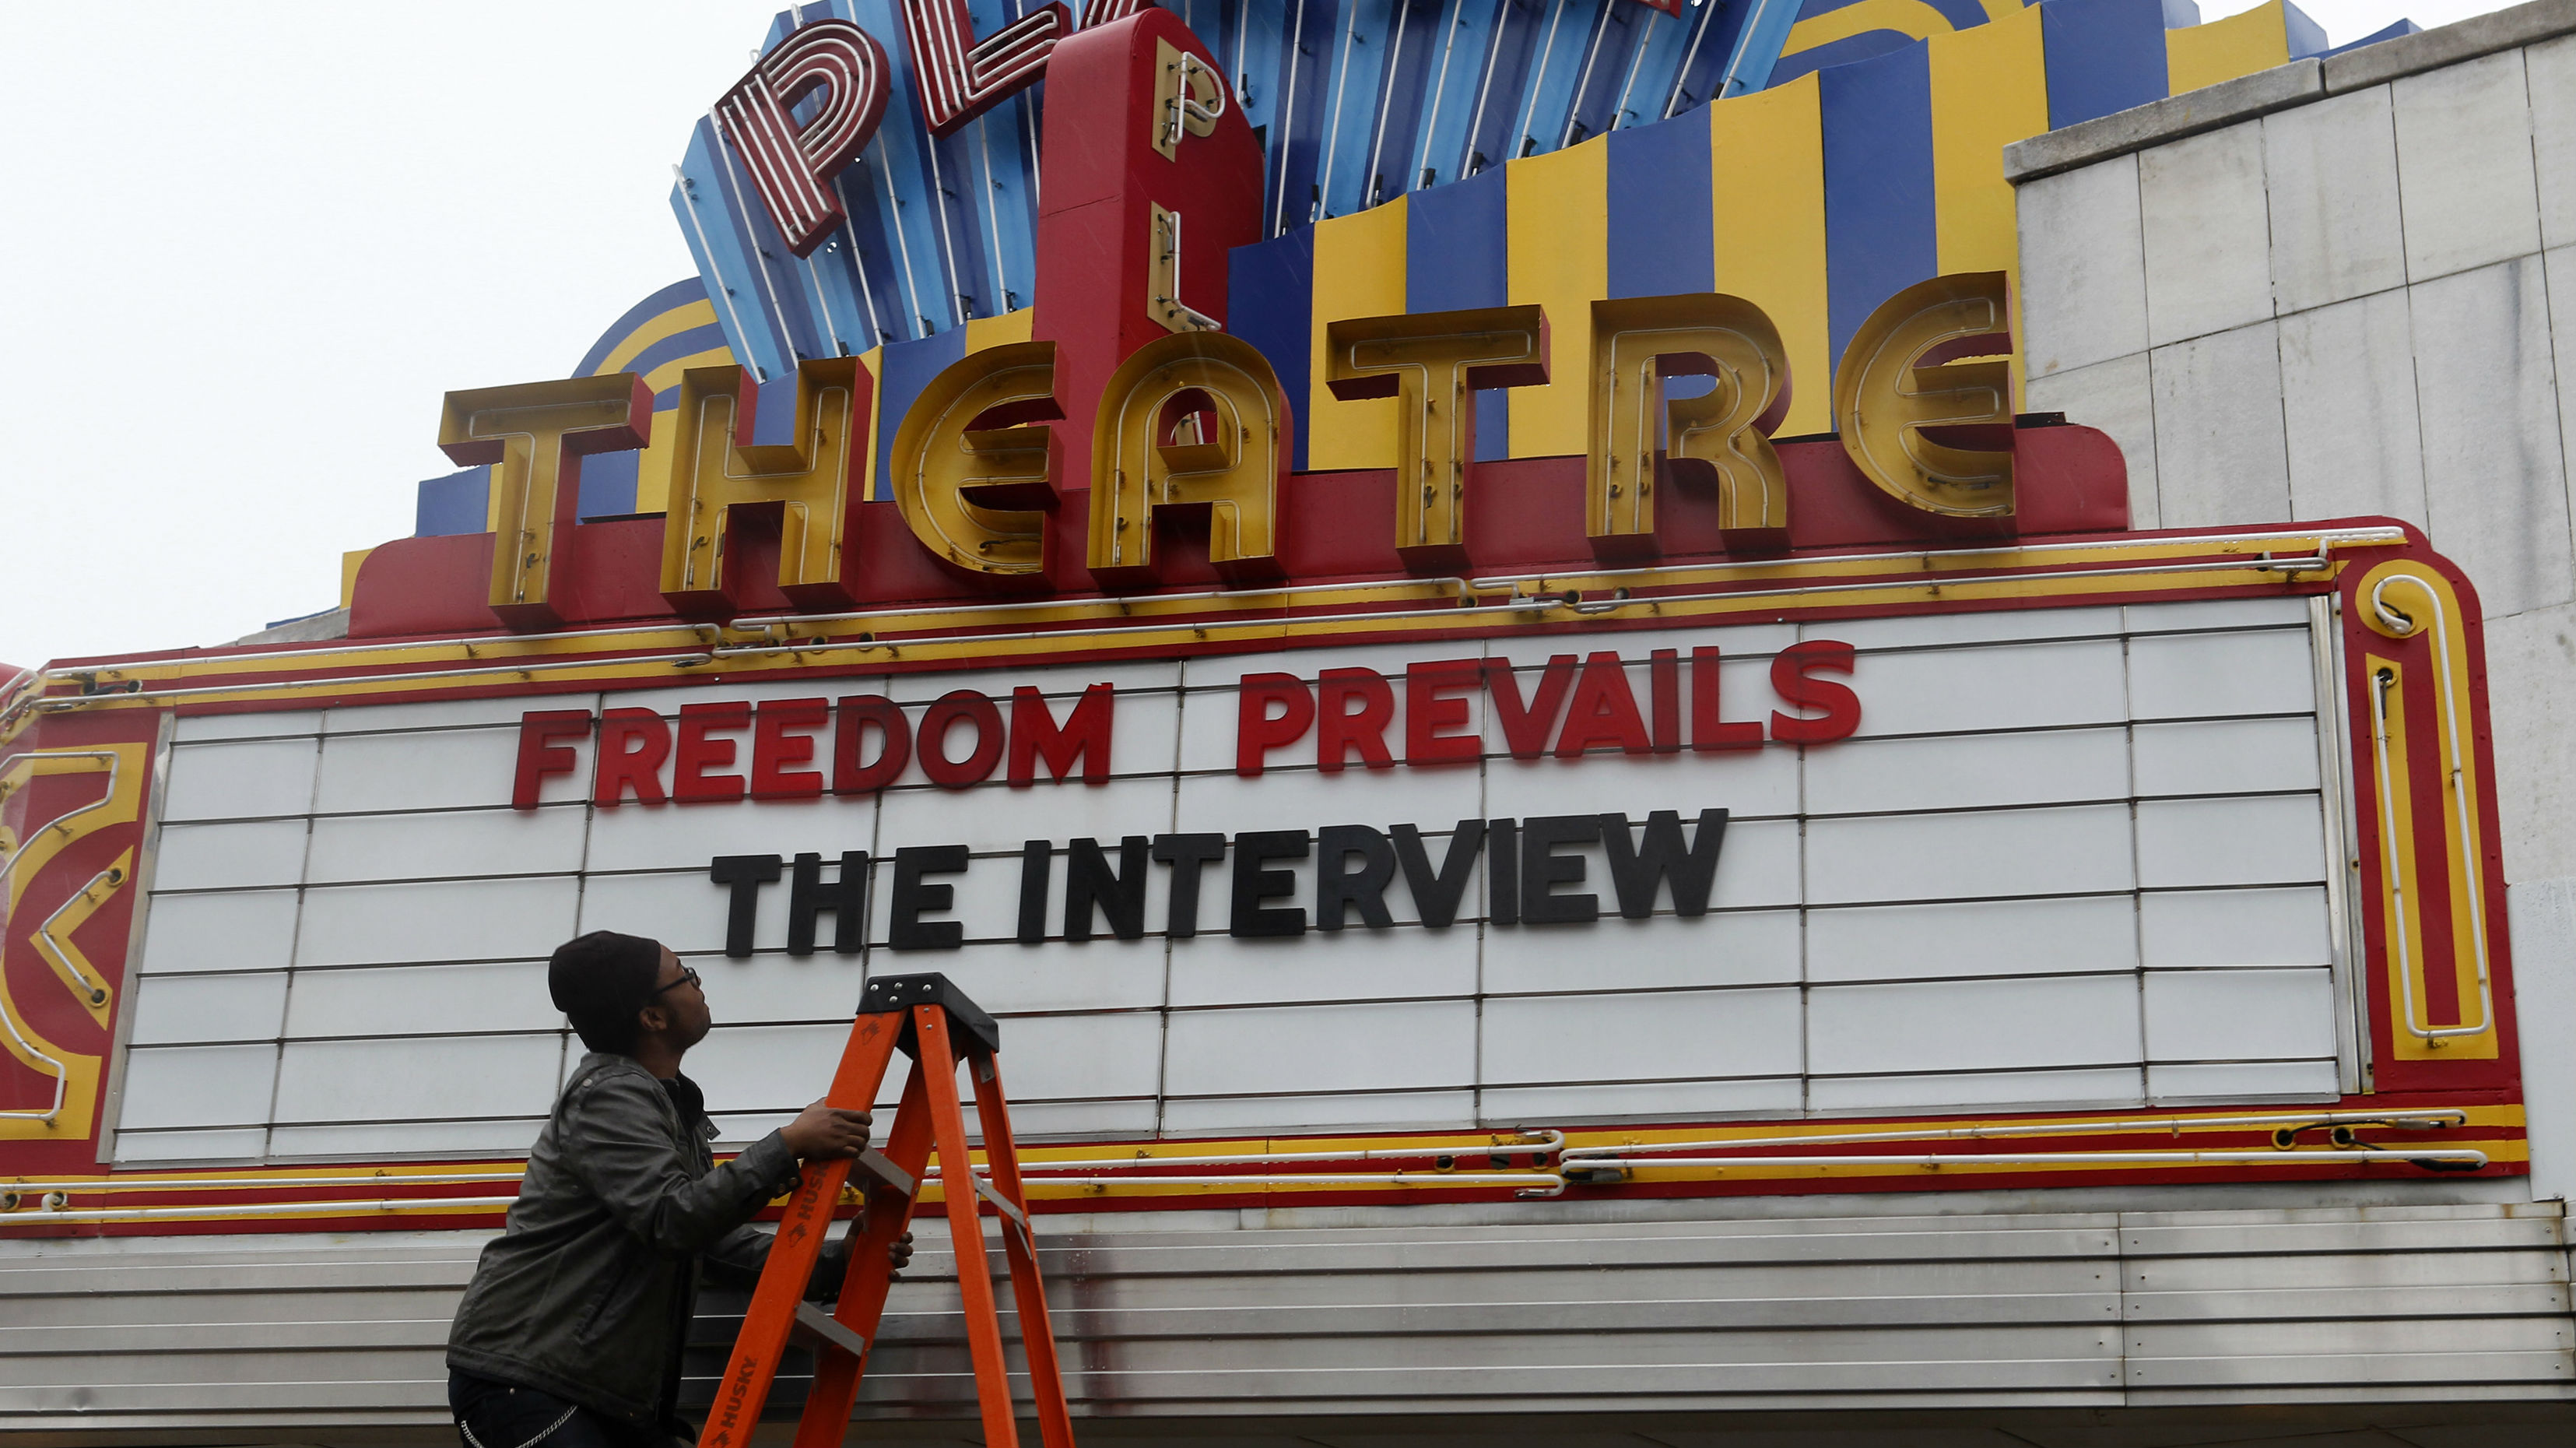 The Interview theater sign